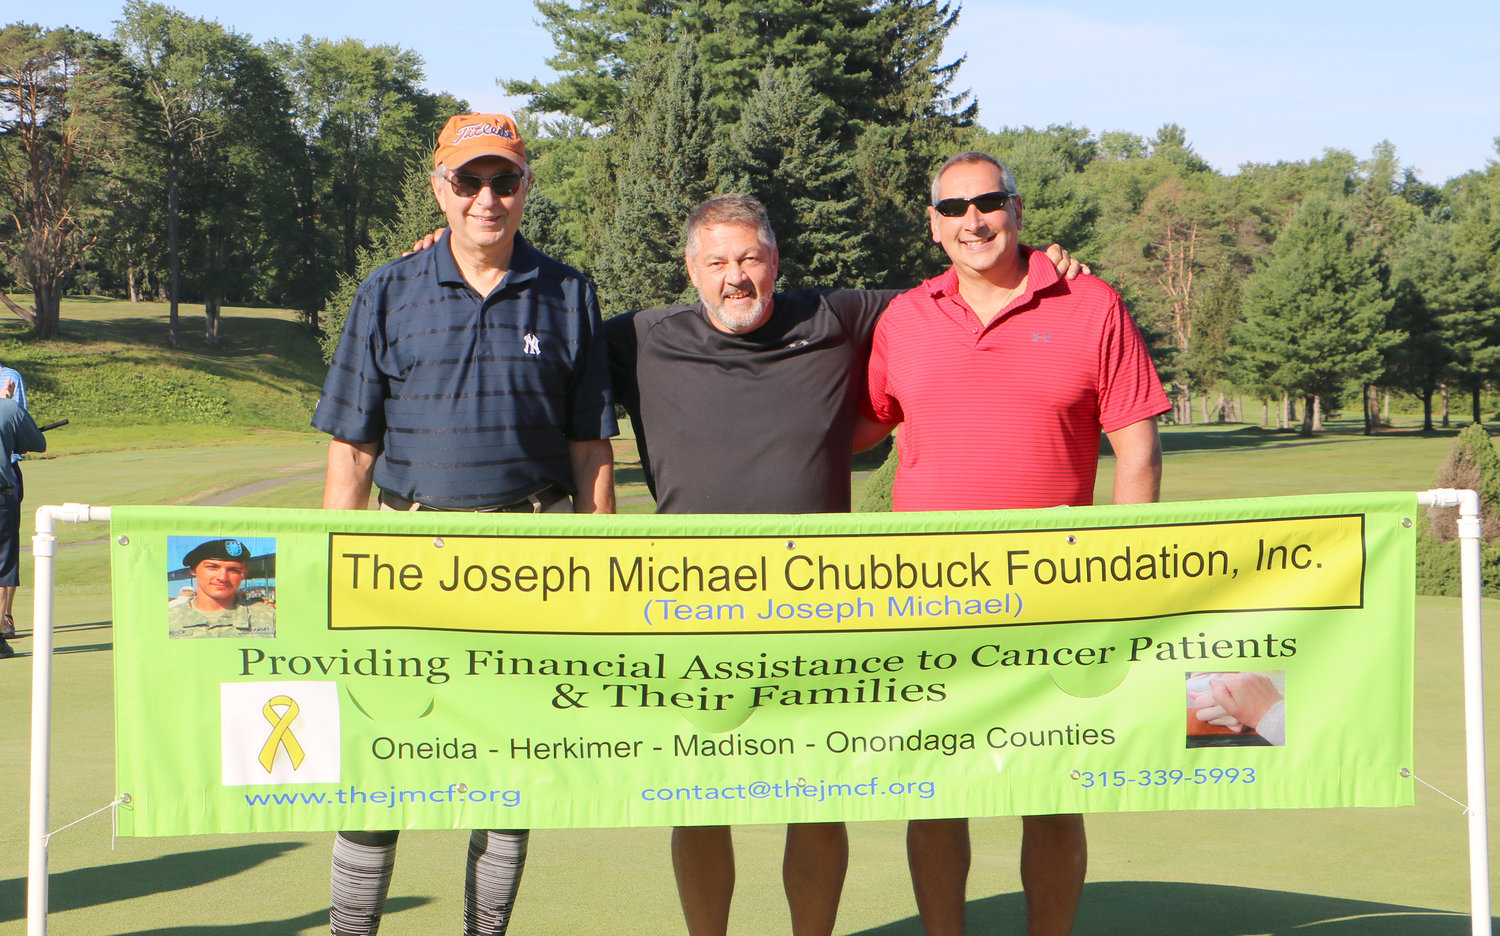 FUNDS FOR CANCER — The Joseph Michael Chubbuck Foundation, Inc., recently raised $10,000 to assist local cancer patients in need.  Winning the tournament was the team, The Bushwhackers, from left: Dave Olney, Bill Baskiewich and Aaron Bouton.